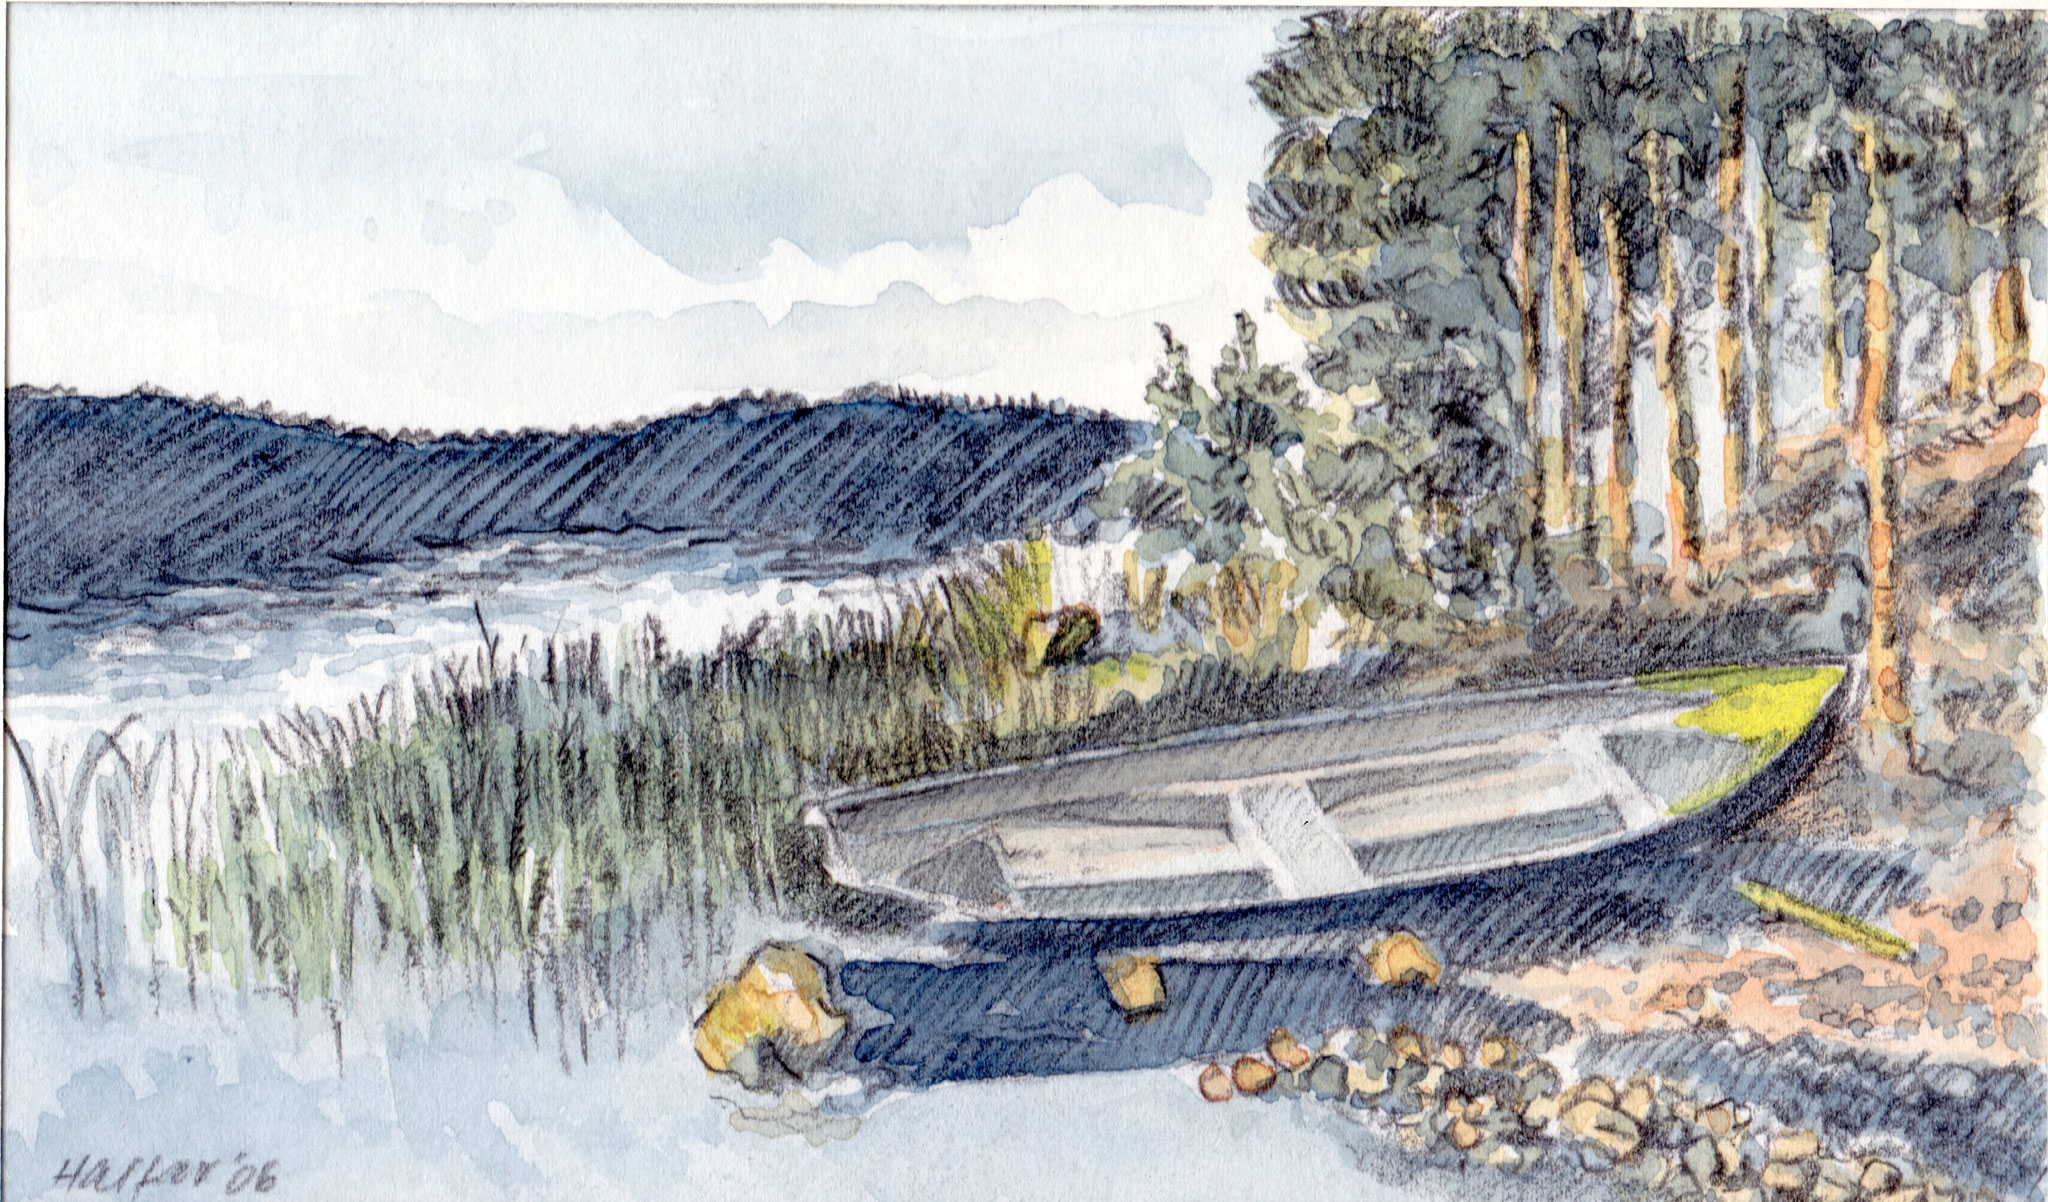 ' Saimaa Seen' Finnland, Aquarell/Pittstift, 15 x 20 cm, 2006